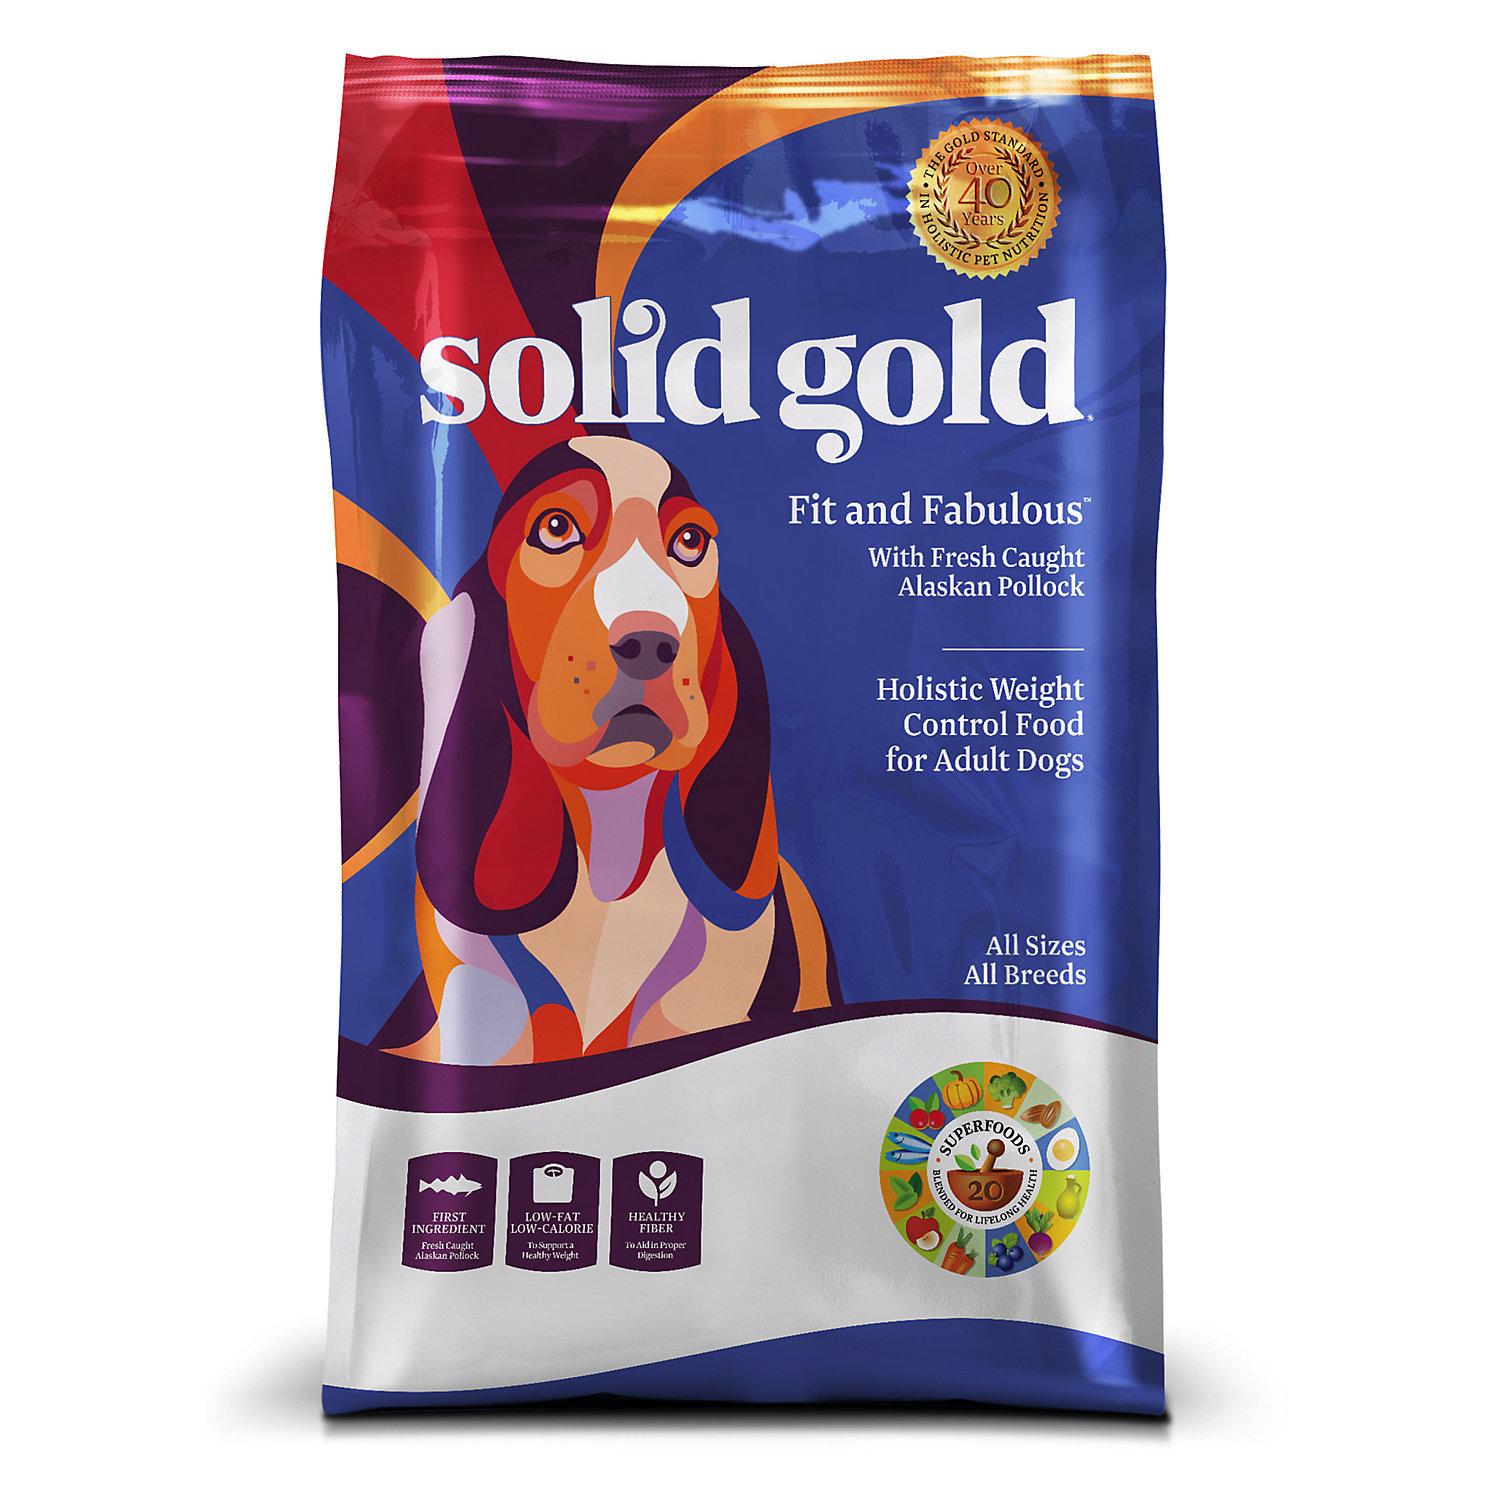 Solid Gold Fit & Fabulous Alaskan Pollock Weight Control Adult Dog Food, 4 lbs. (11/18) (AN.6)